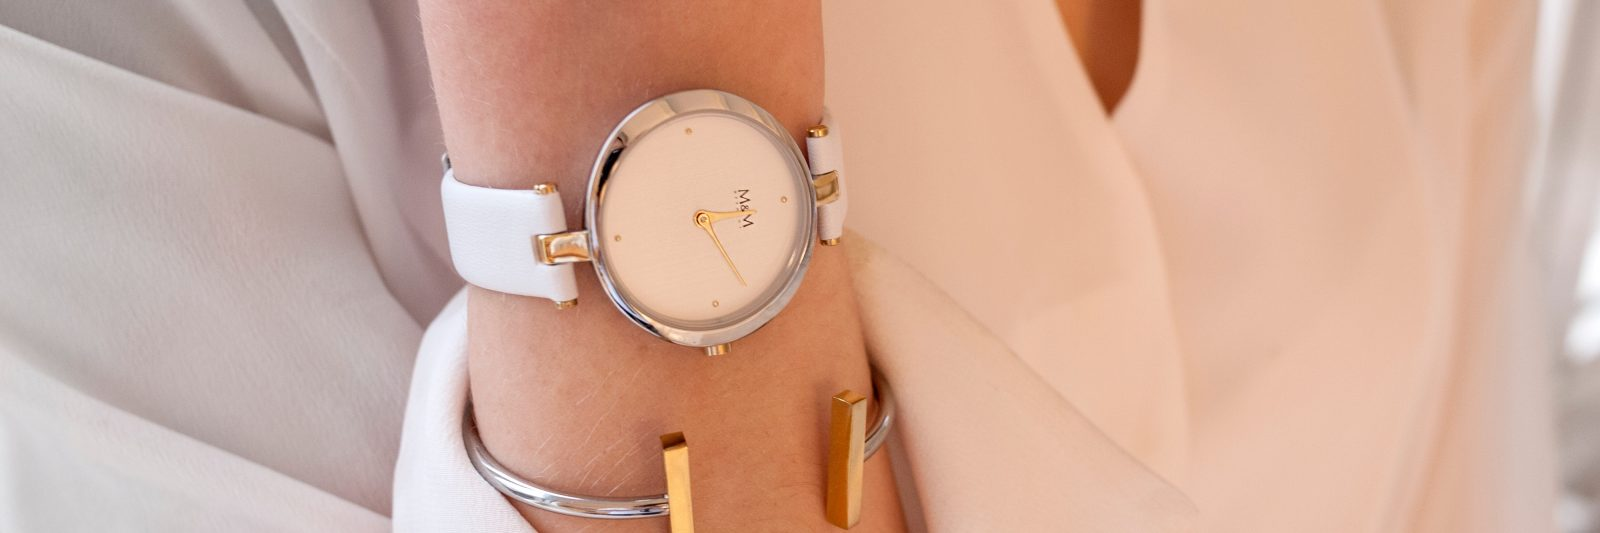 Luxury Watches Any Woman Would Love (If They Weren't So Darn Expensive)